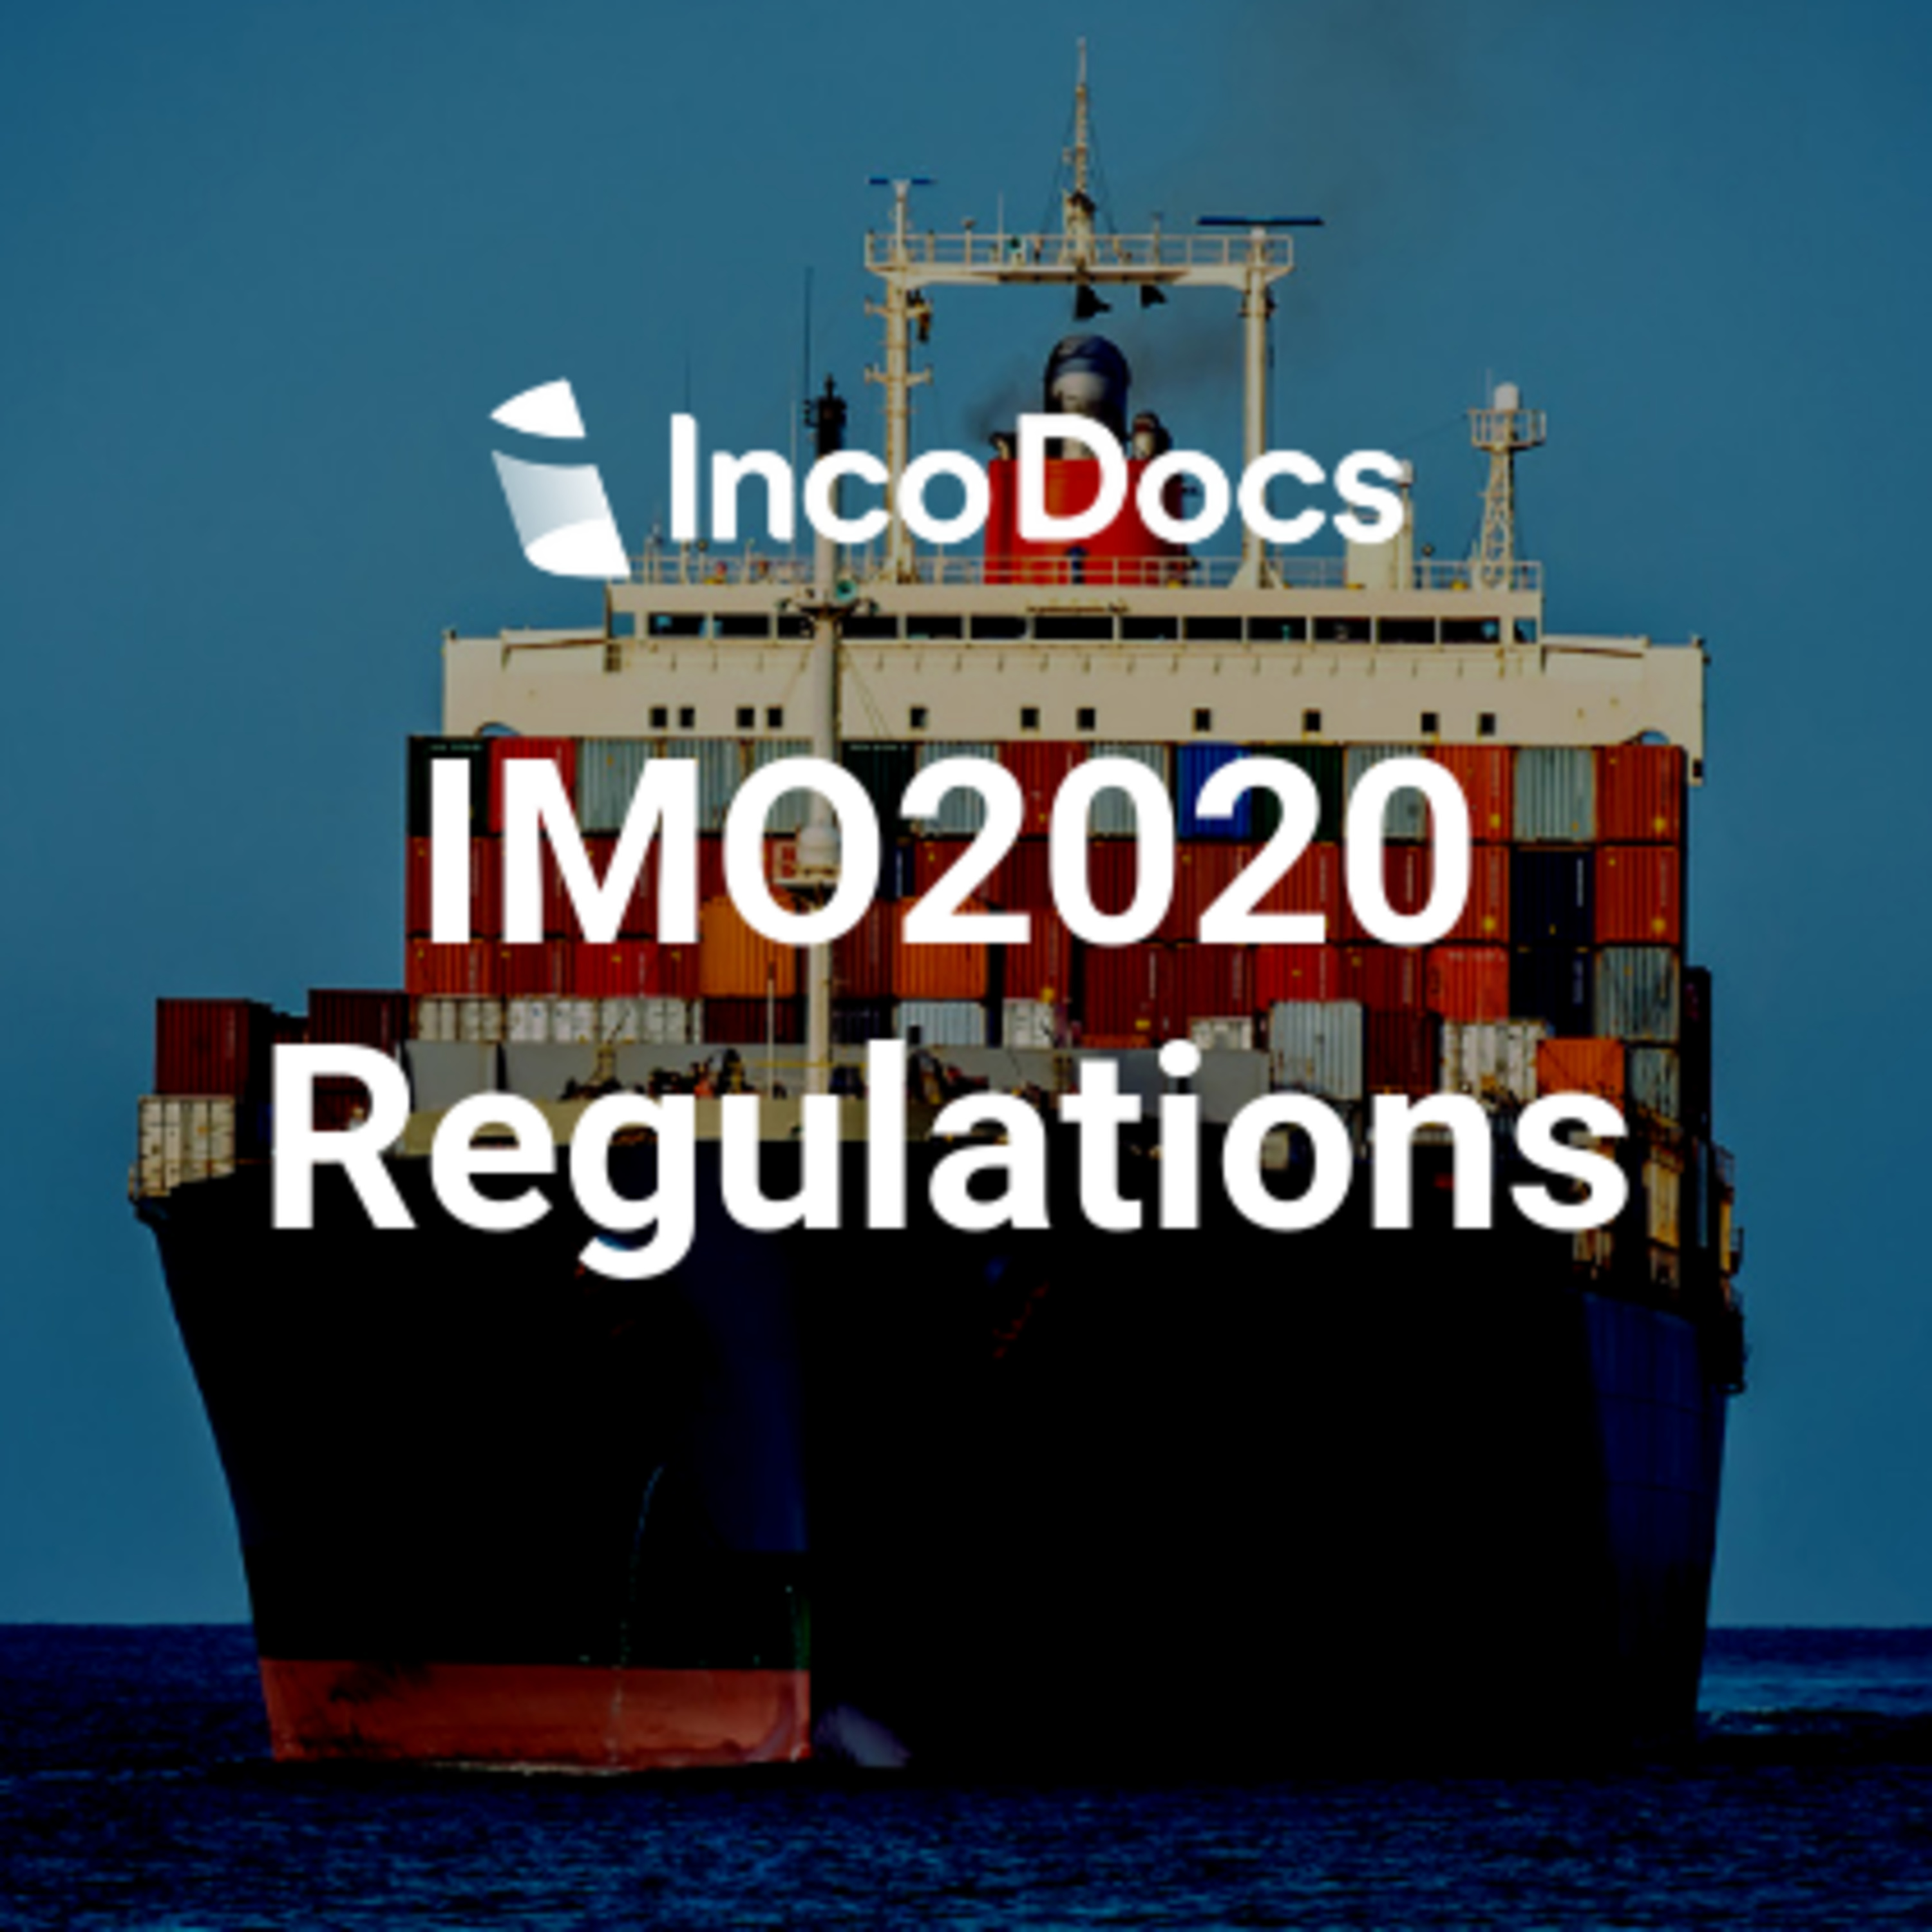 IMO2020 Regulations for the Shipping Industry